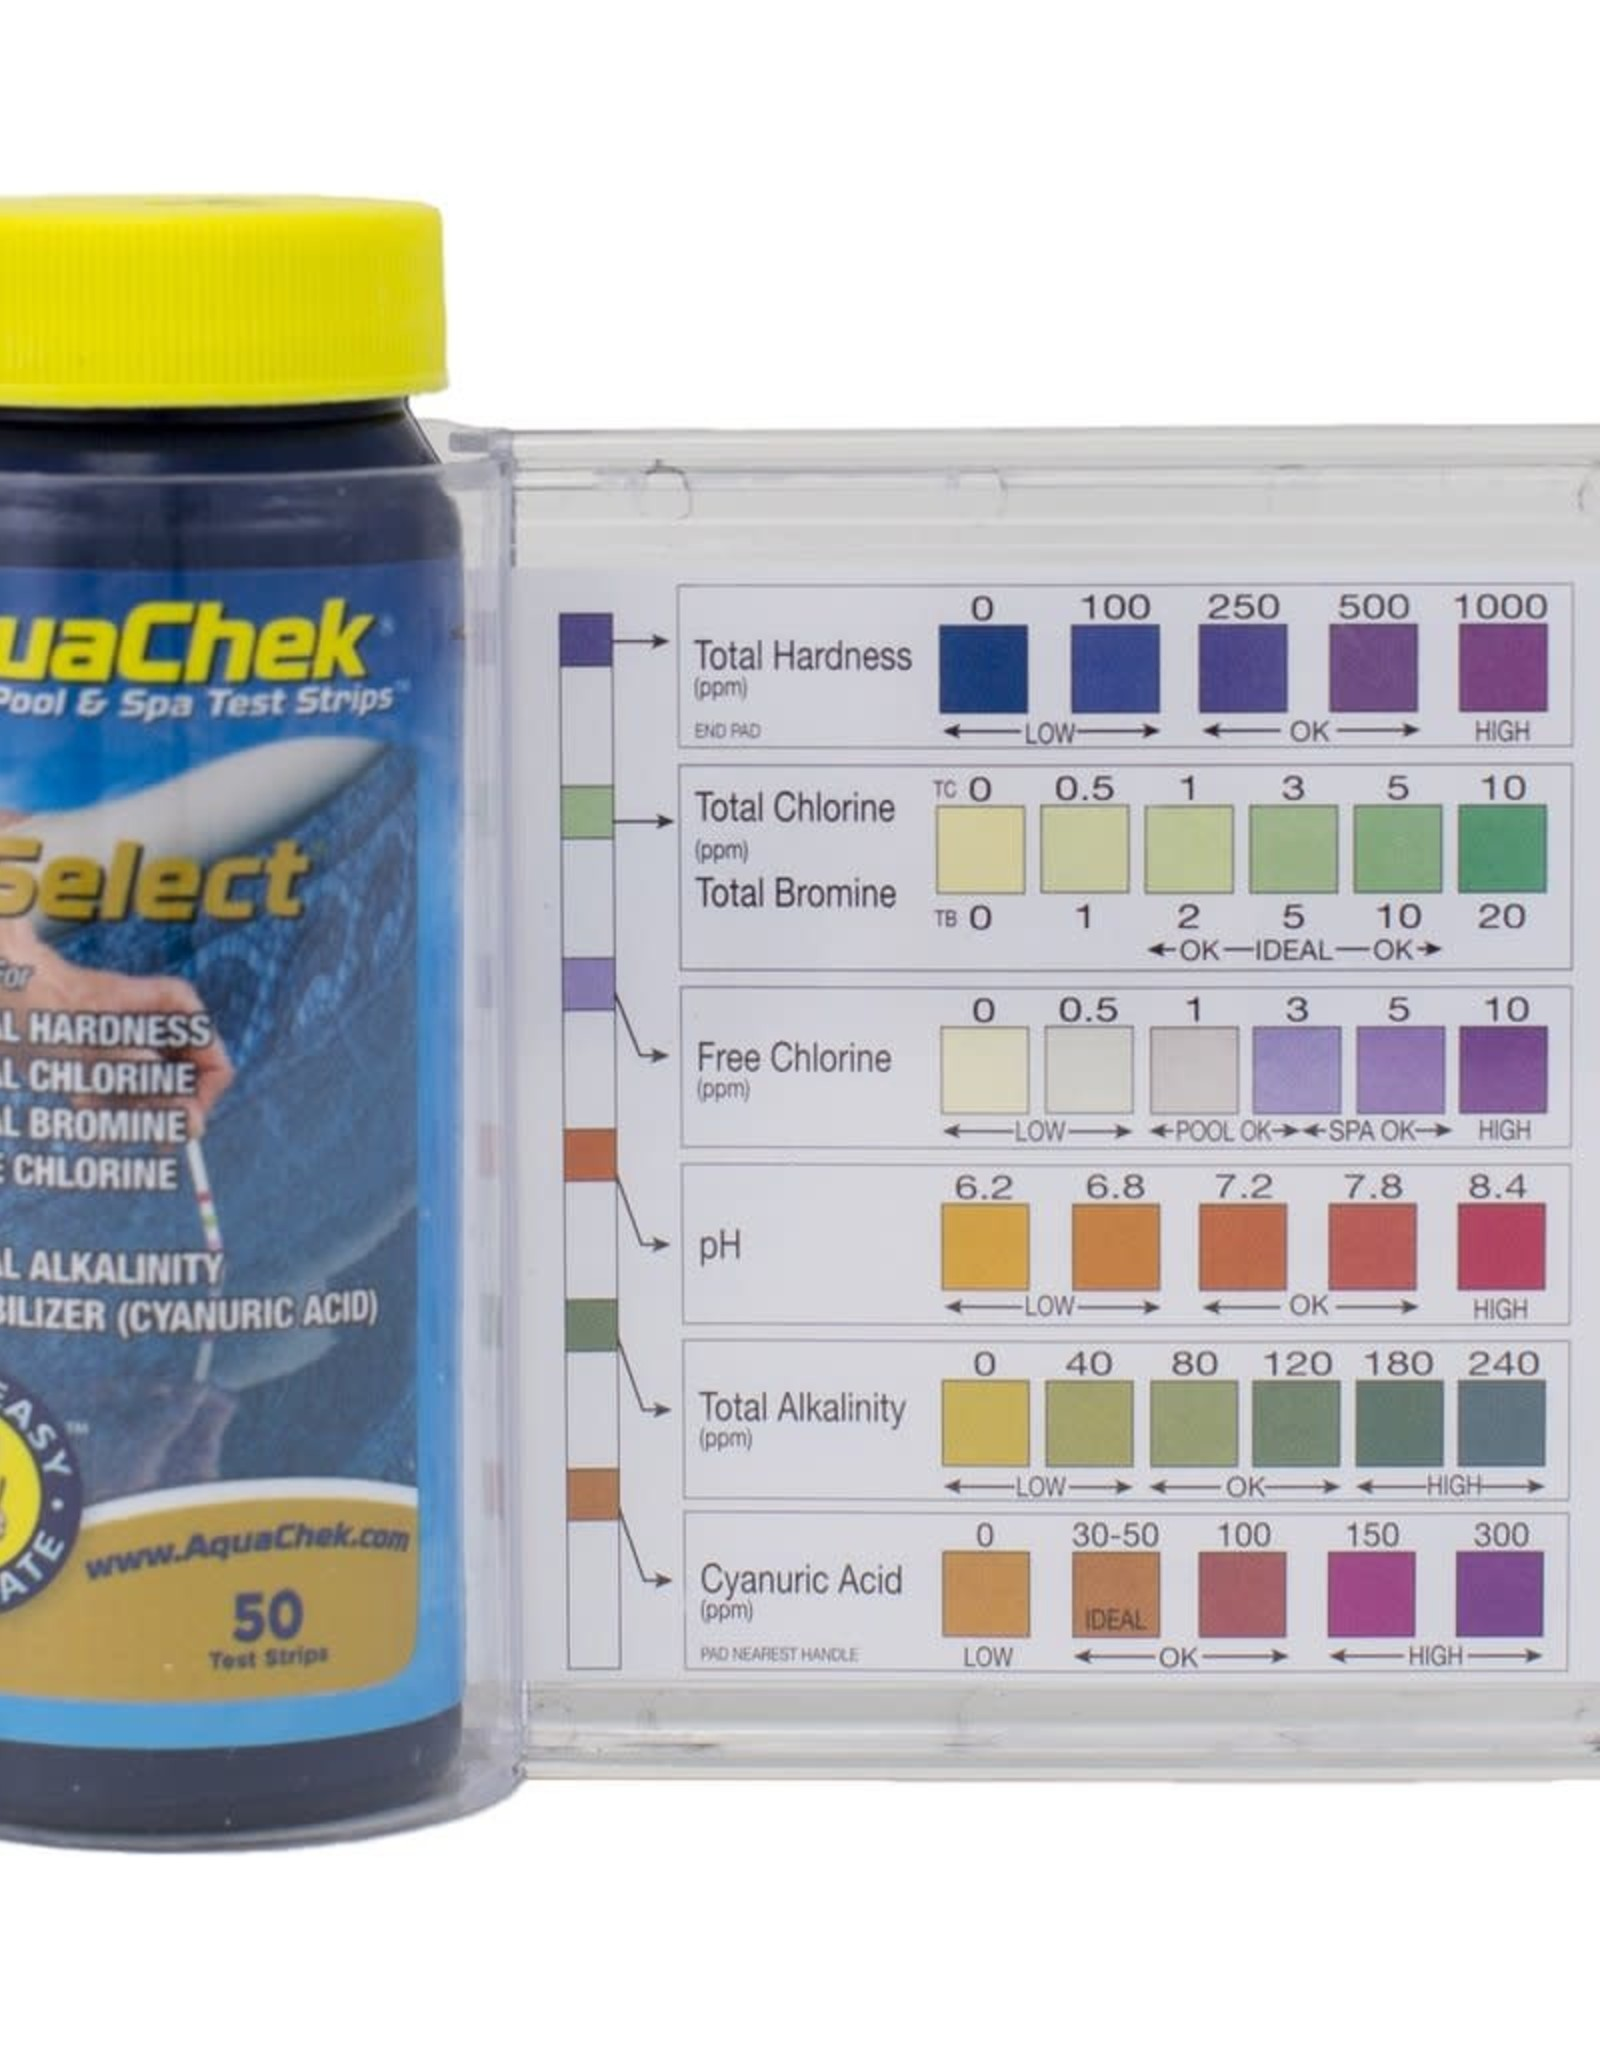 AQUACHEK AQUACHEK (pool & spa Test Strips )